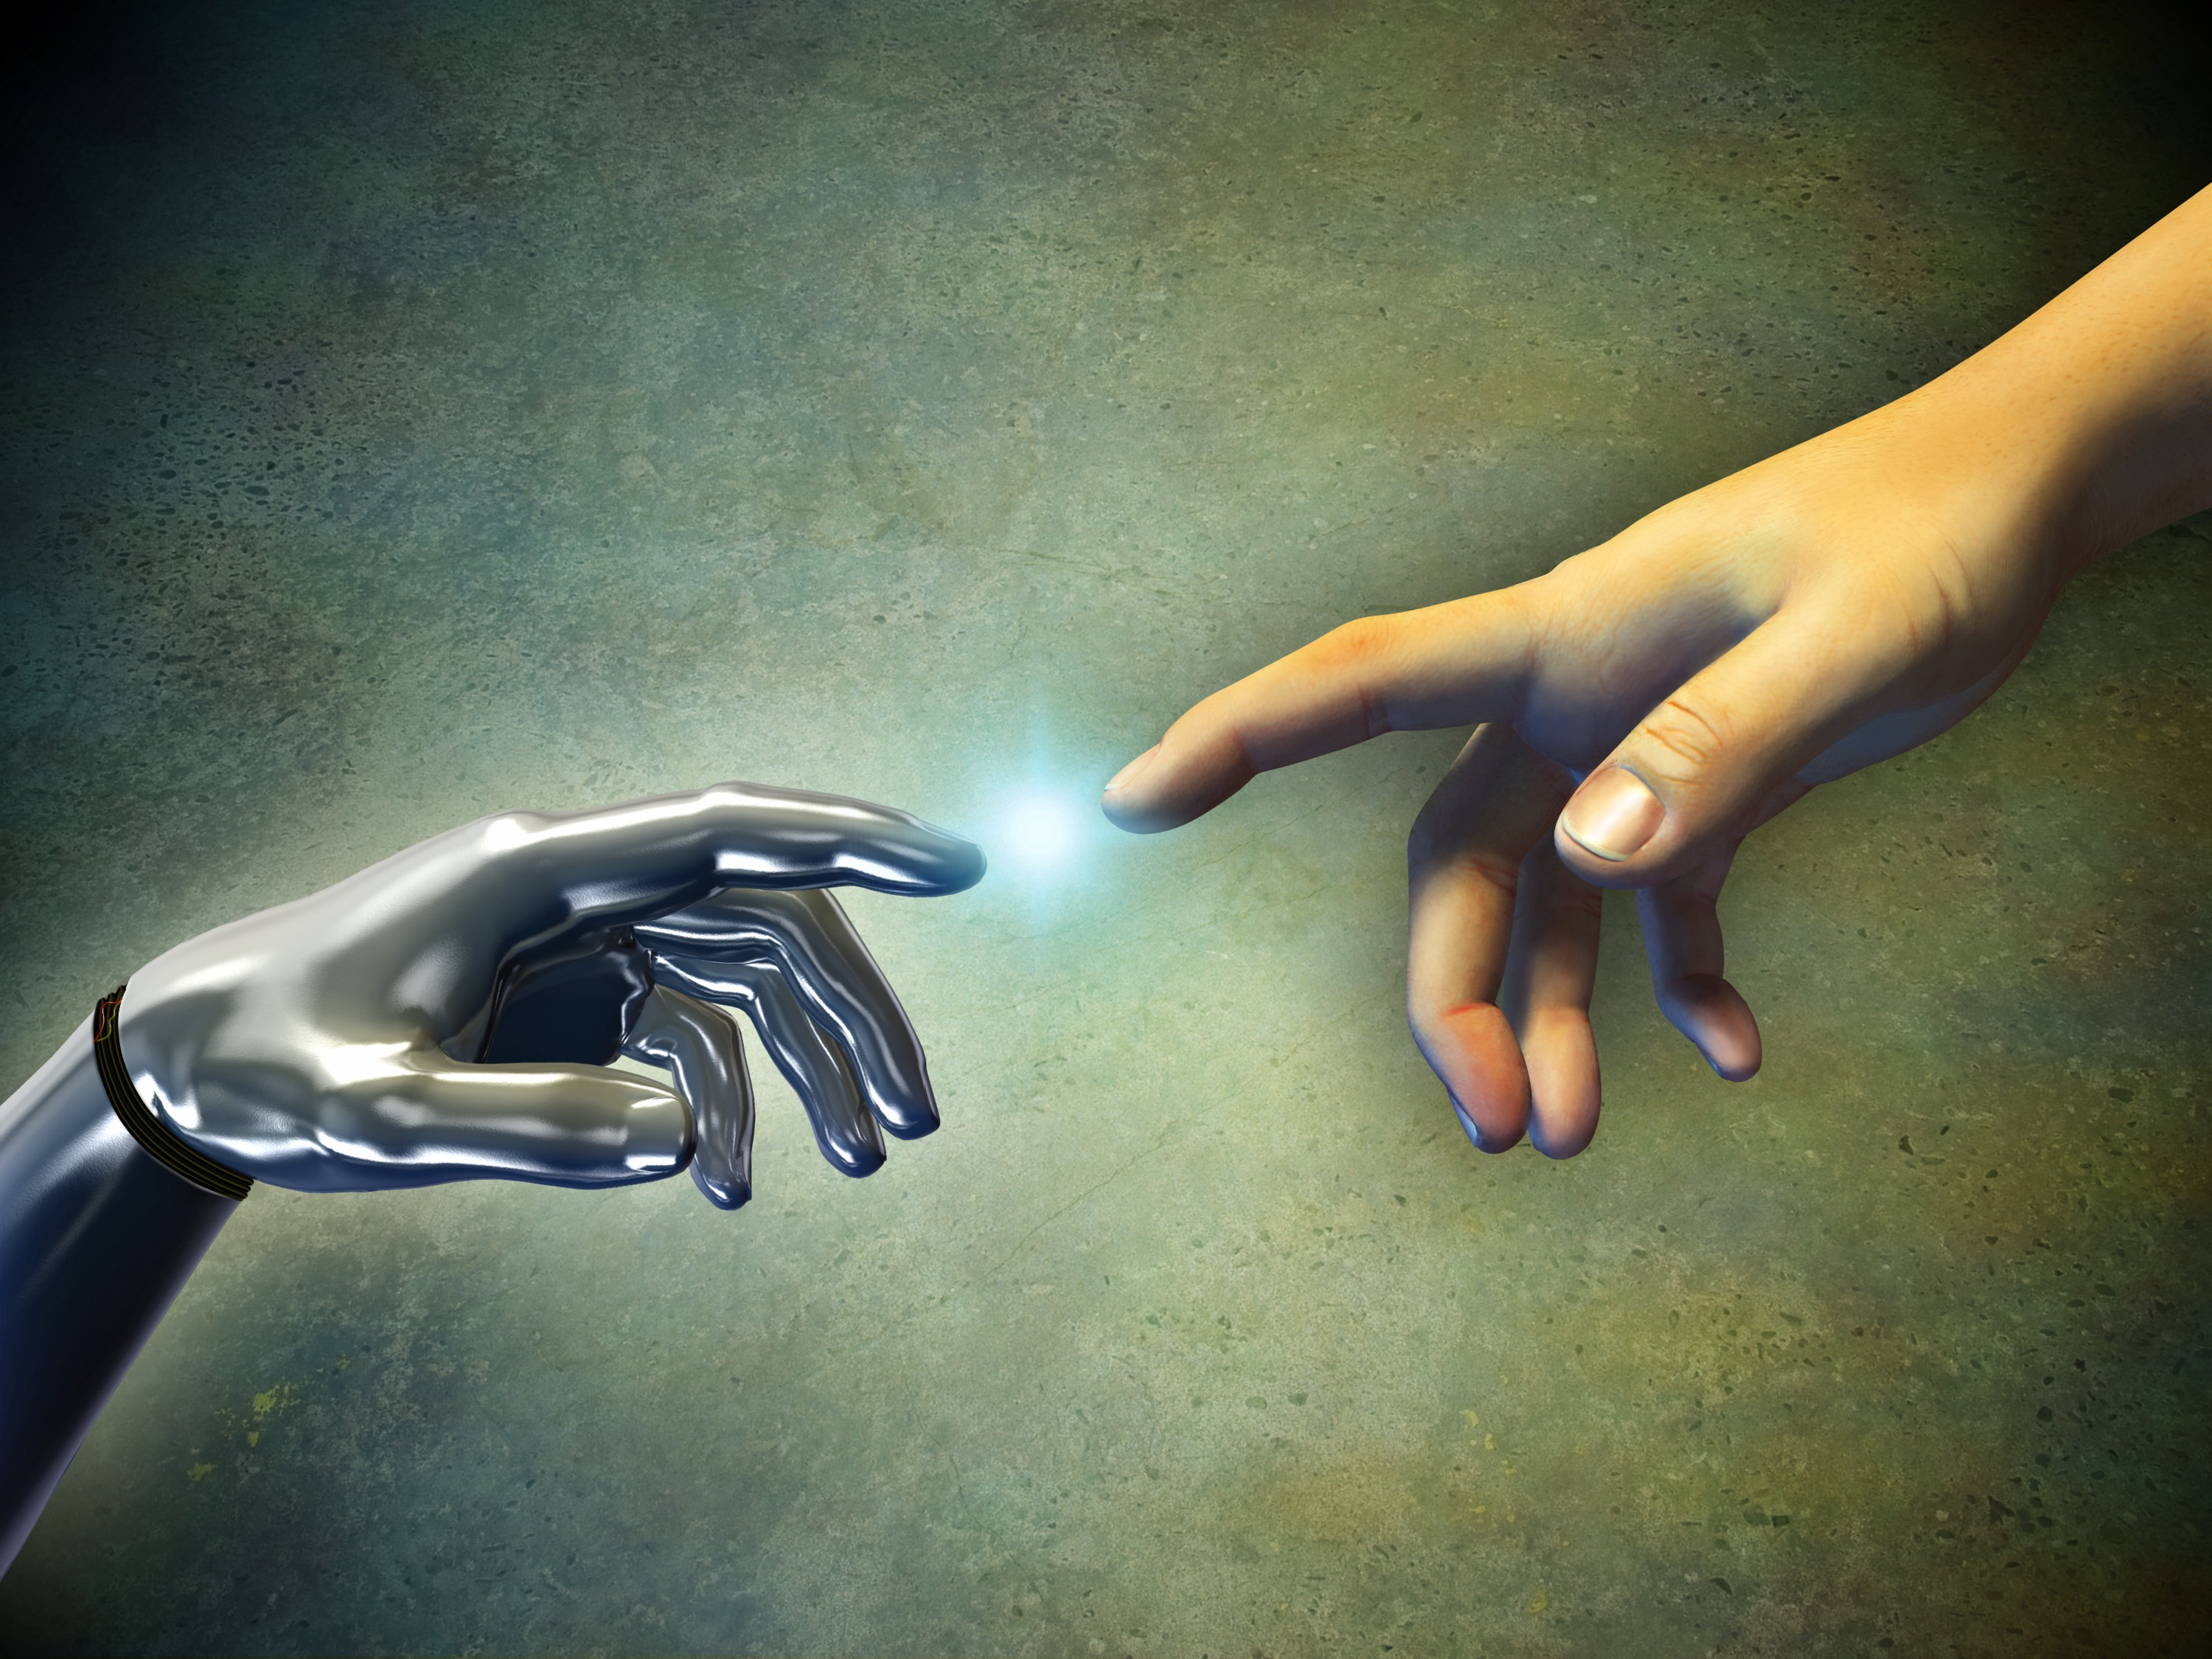 RISE OF THE MACHINE EMPATHS - Towards Data Science